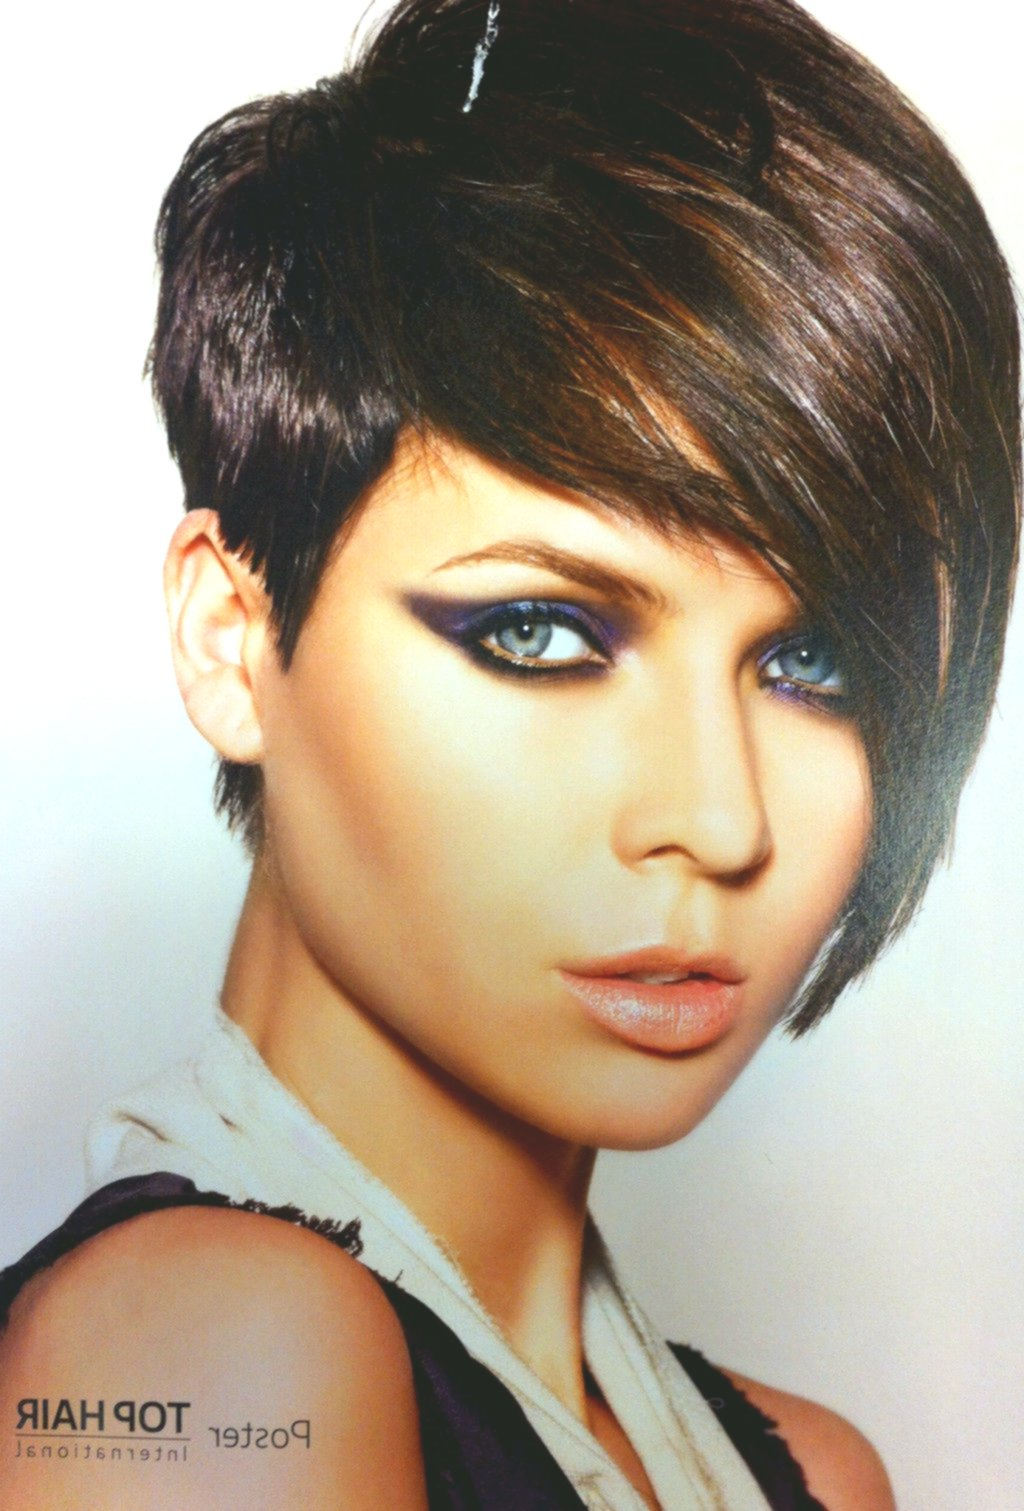 best hairstyles asymmetrical photo picture Amazing hairstyles asymmetrical design